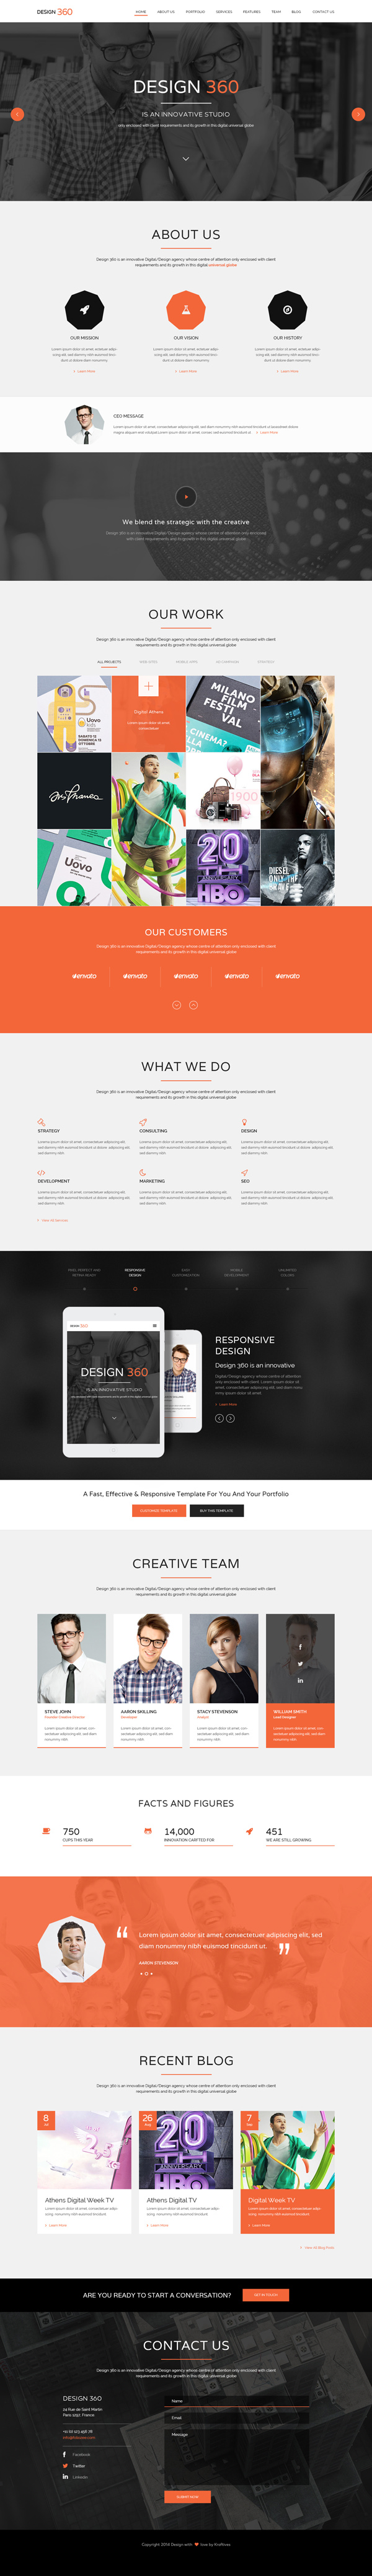 Design 360 - Single Page PSD HTML5 Template